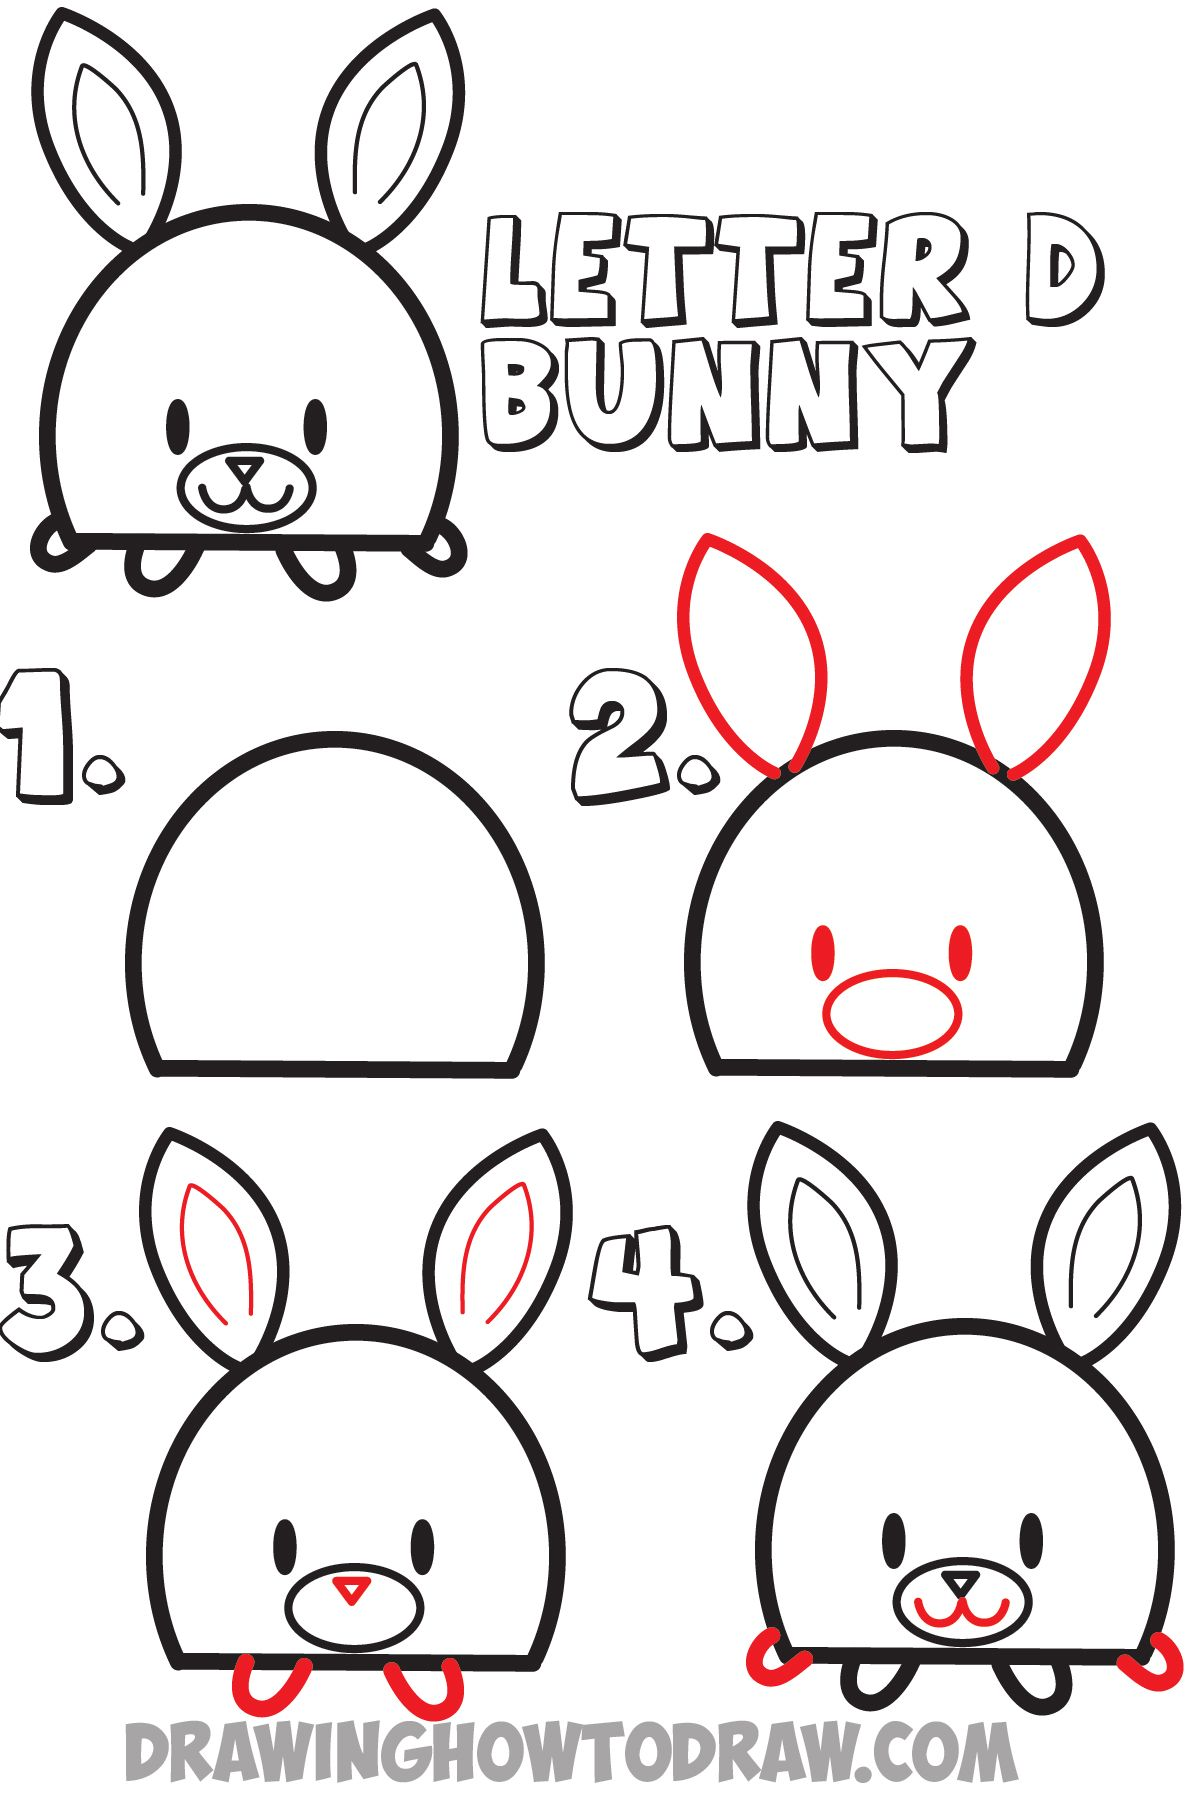 How To Draw A Cartoon Bunny Rabbit From The Letter D